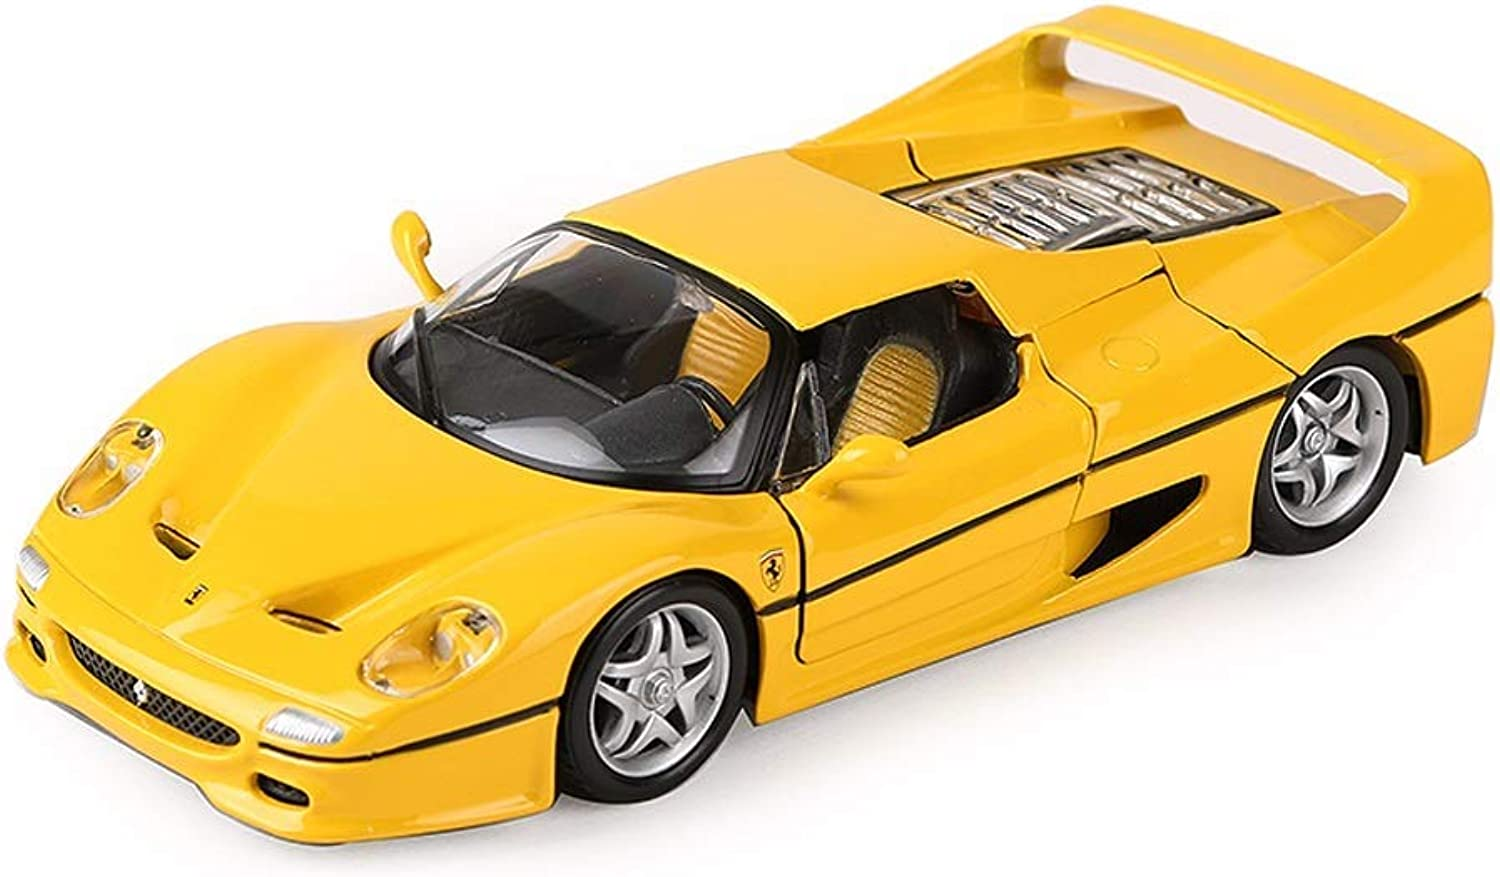 KKD Scale Model Simulation Vehicle Yellow Model Car Ferrari Model Rafa 458 Sports Car Model Simulation Alloy Toy Car Model 1 24 Static Model Birthday Gift